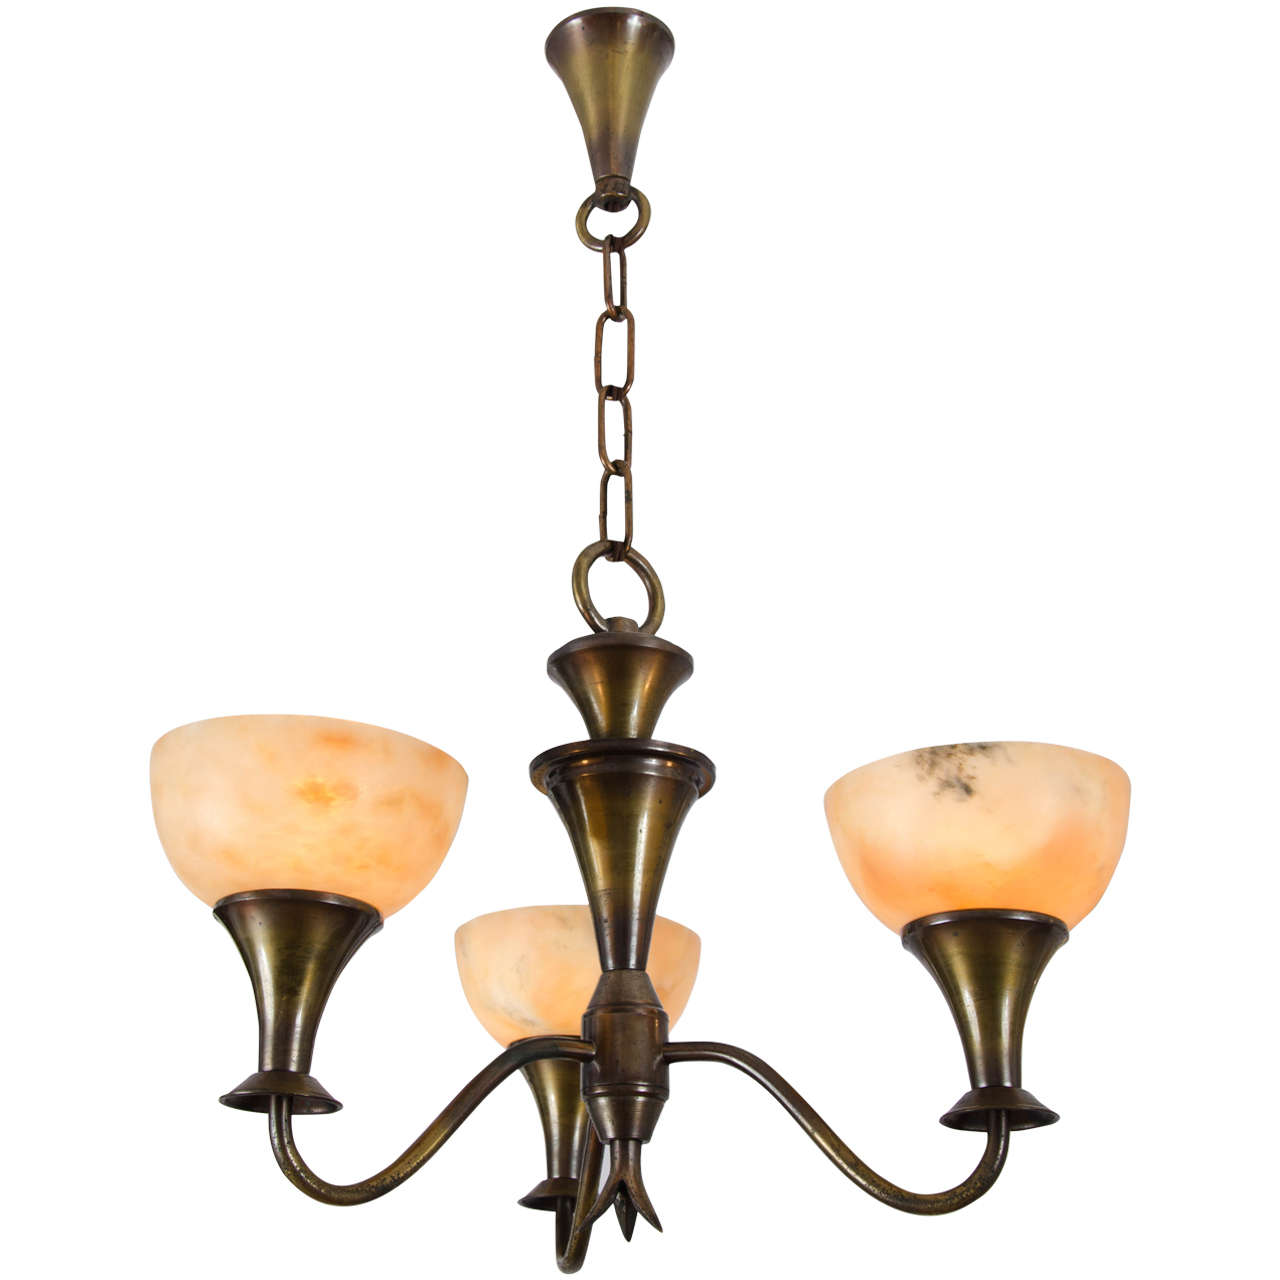 Art Deco Chandelier With Alabaster Shades For Sale At 1stdibs